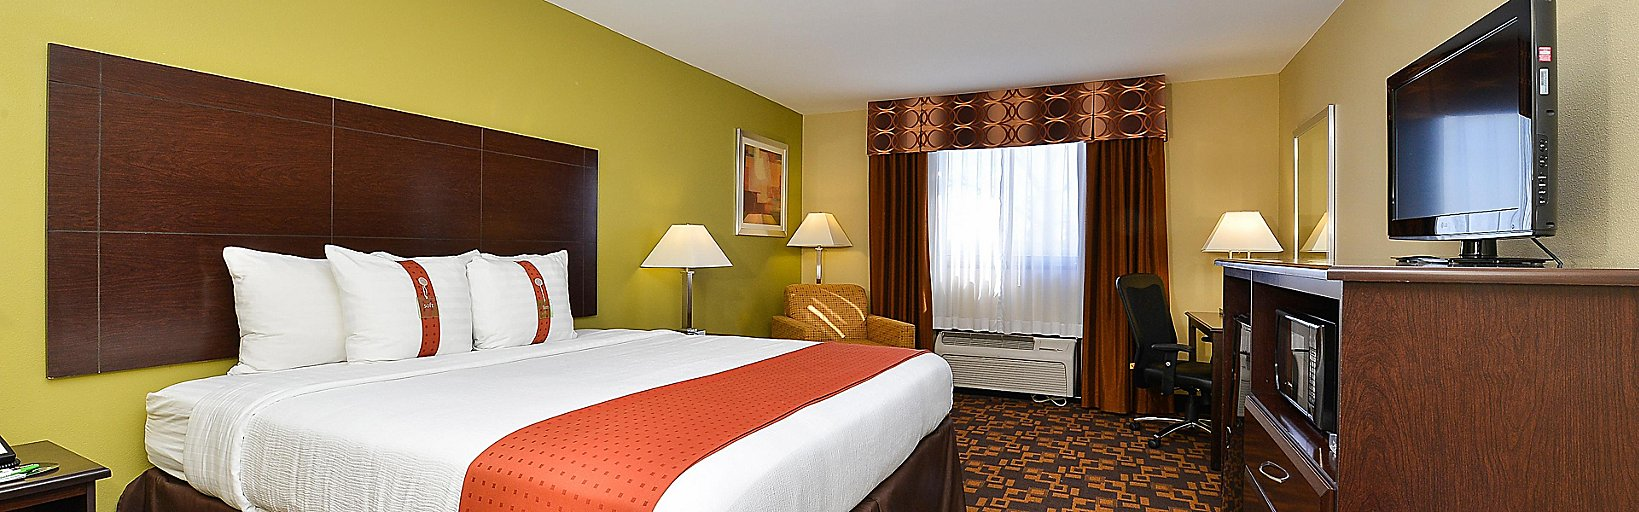 Holiday Inn Mount Prospect - Chicago - Room Pictures & Amenities